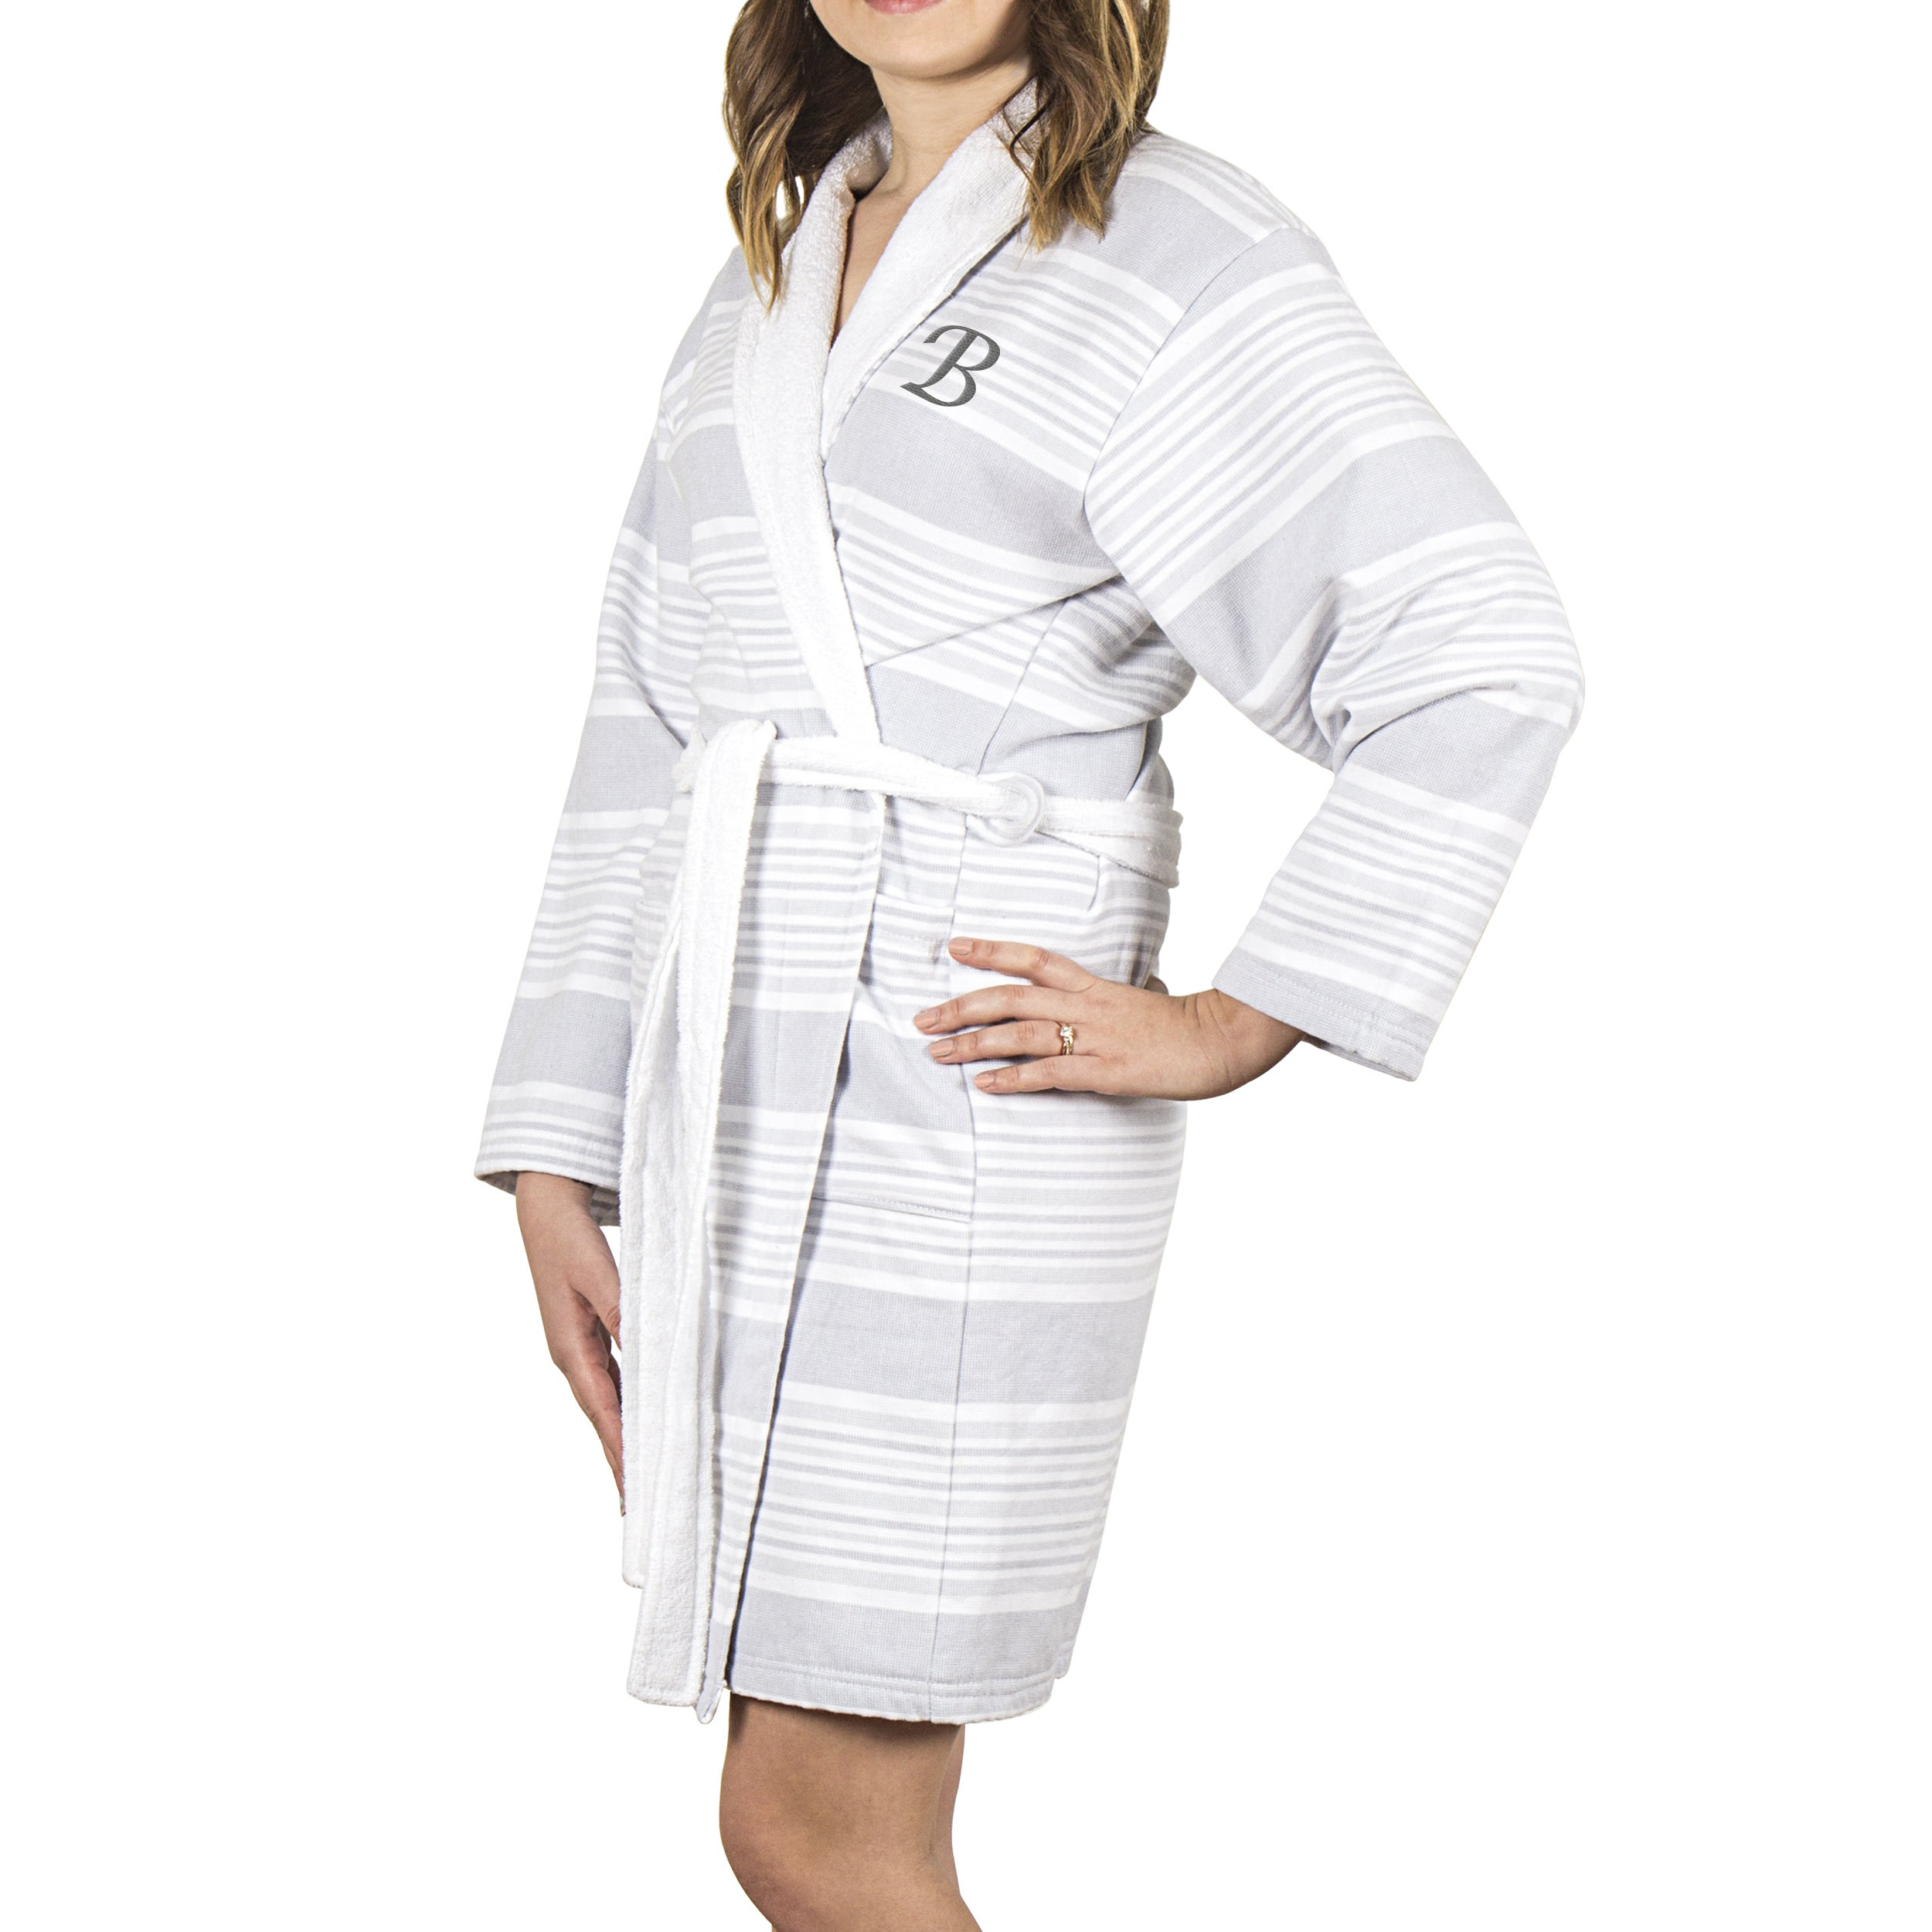 714f07edbe Shop Personalized Turkish Cotton Bath Robe - Free Shipping Today -  Overstock - 16936181